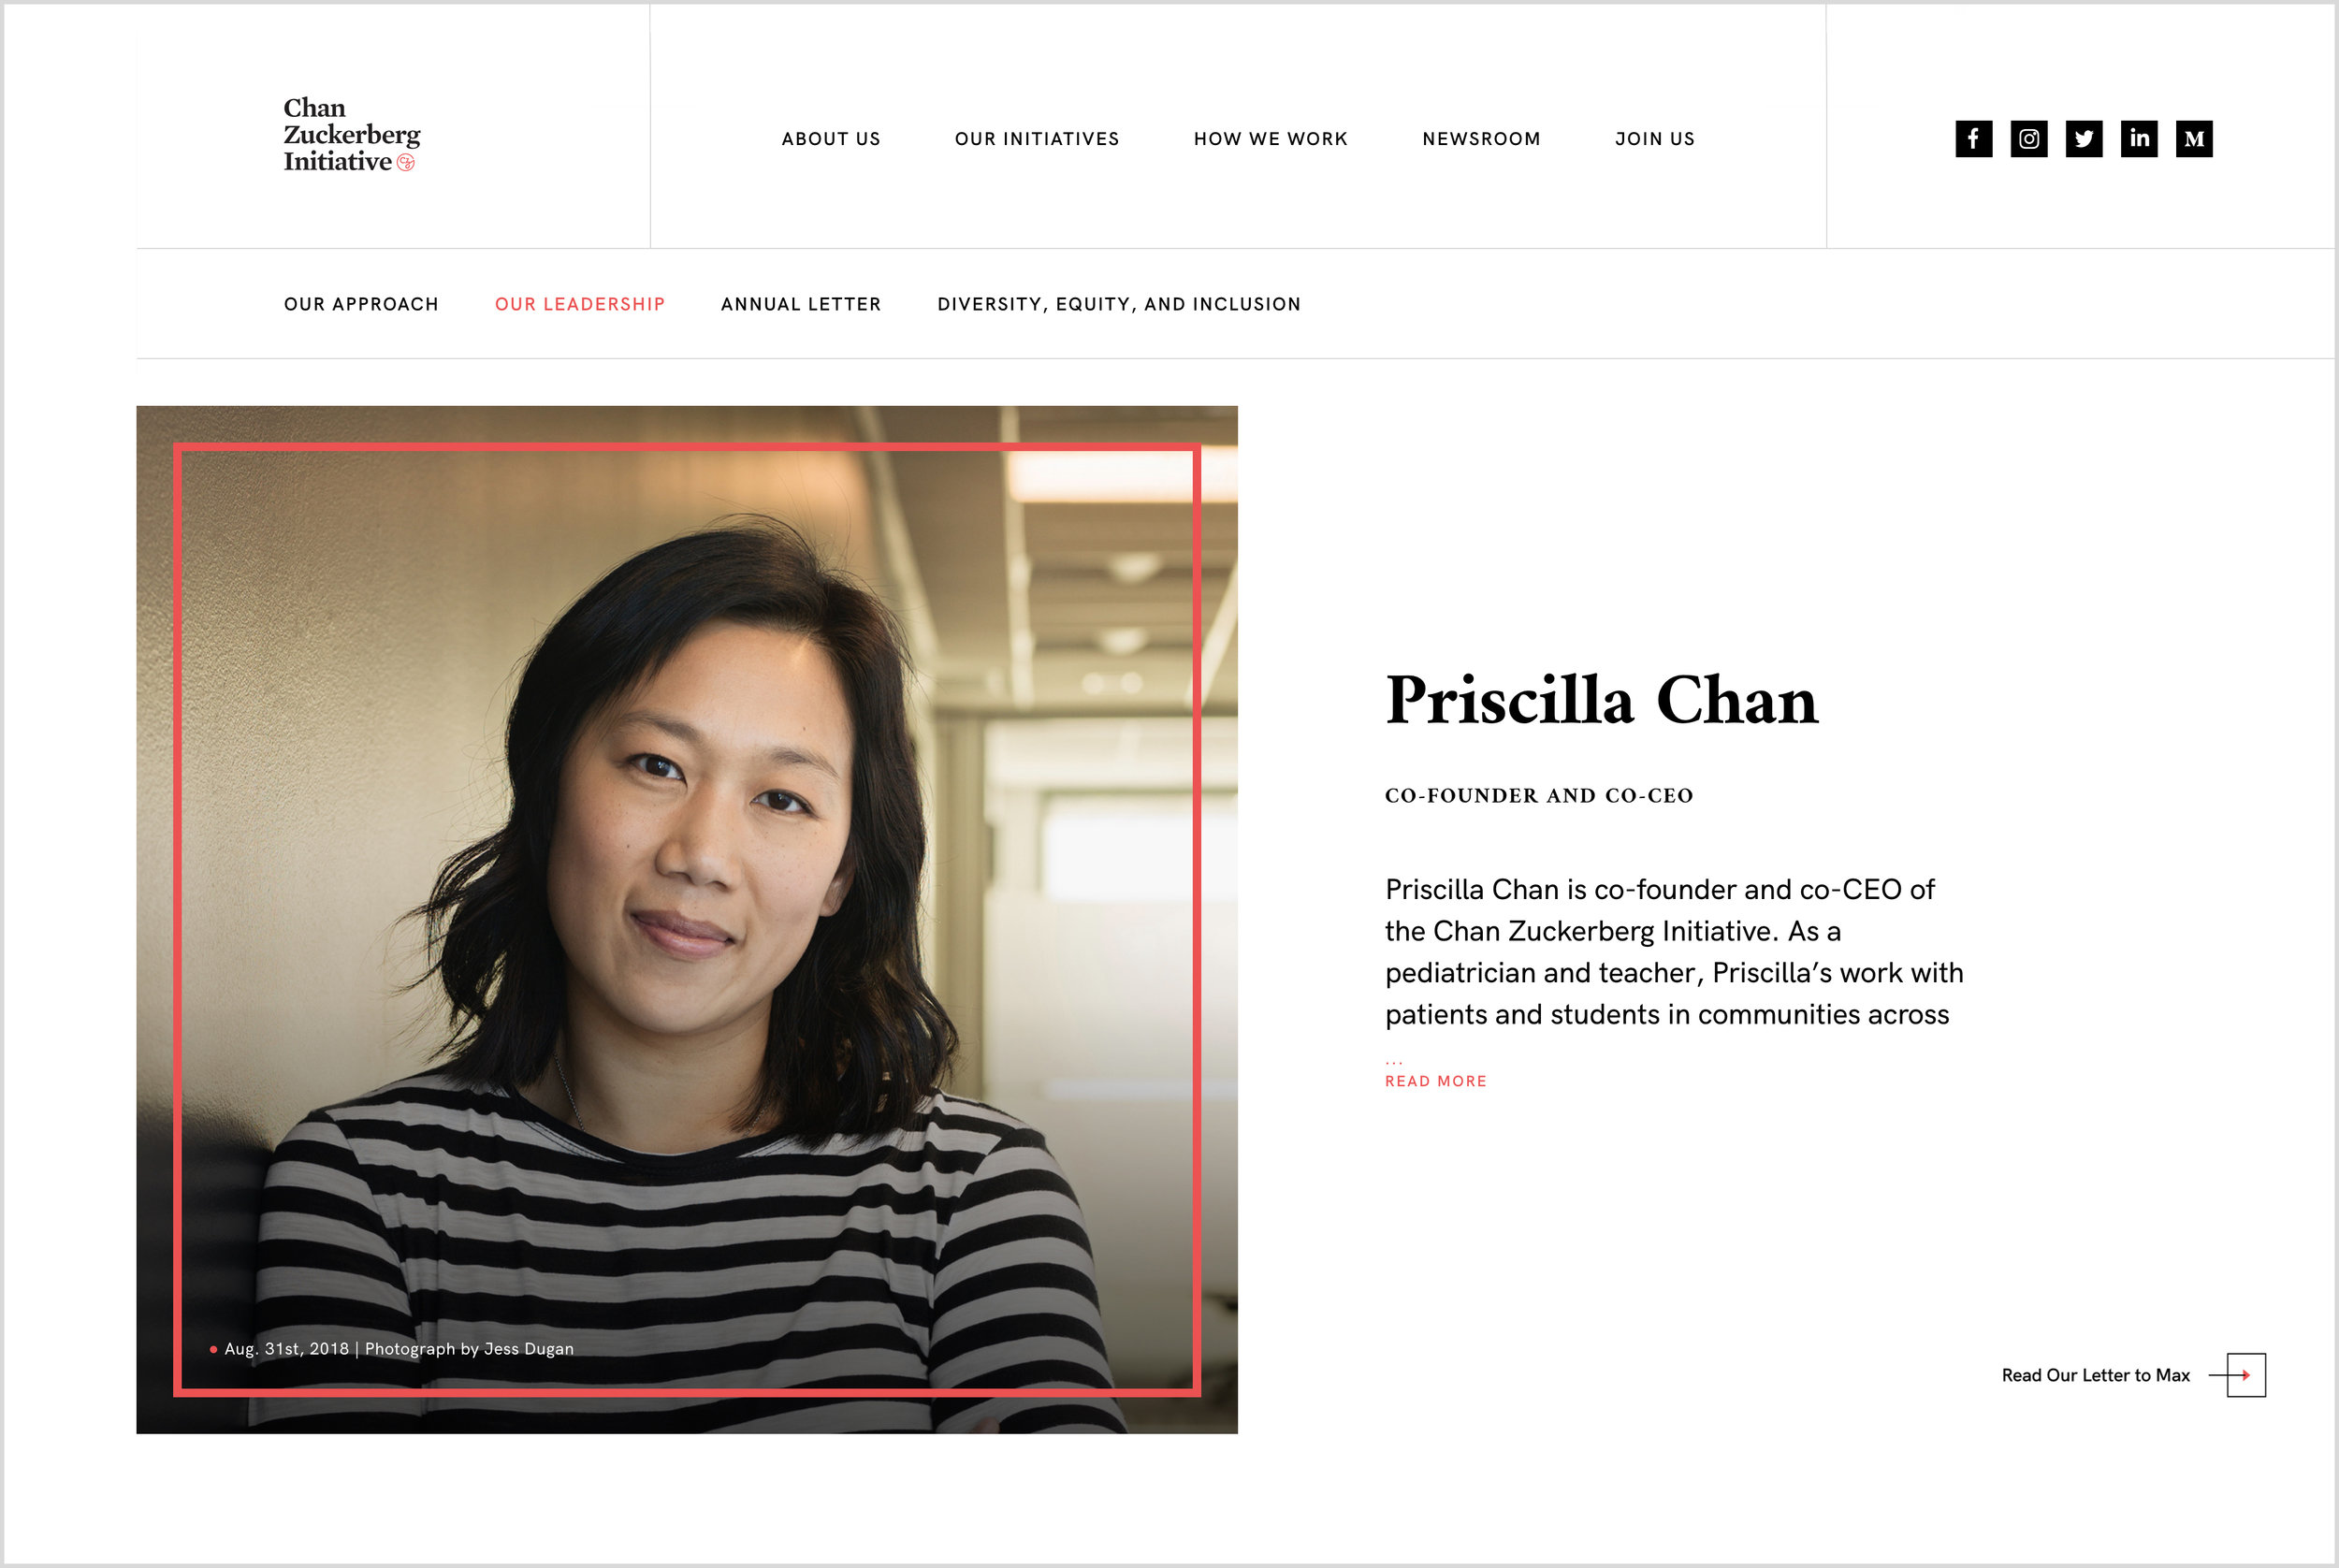 Priscilla Chan, Co-Founder and Co-CEO, Chan Zuckerberg Initiative, for the  Chan Zuckerberg Initiative .